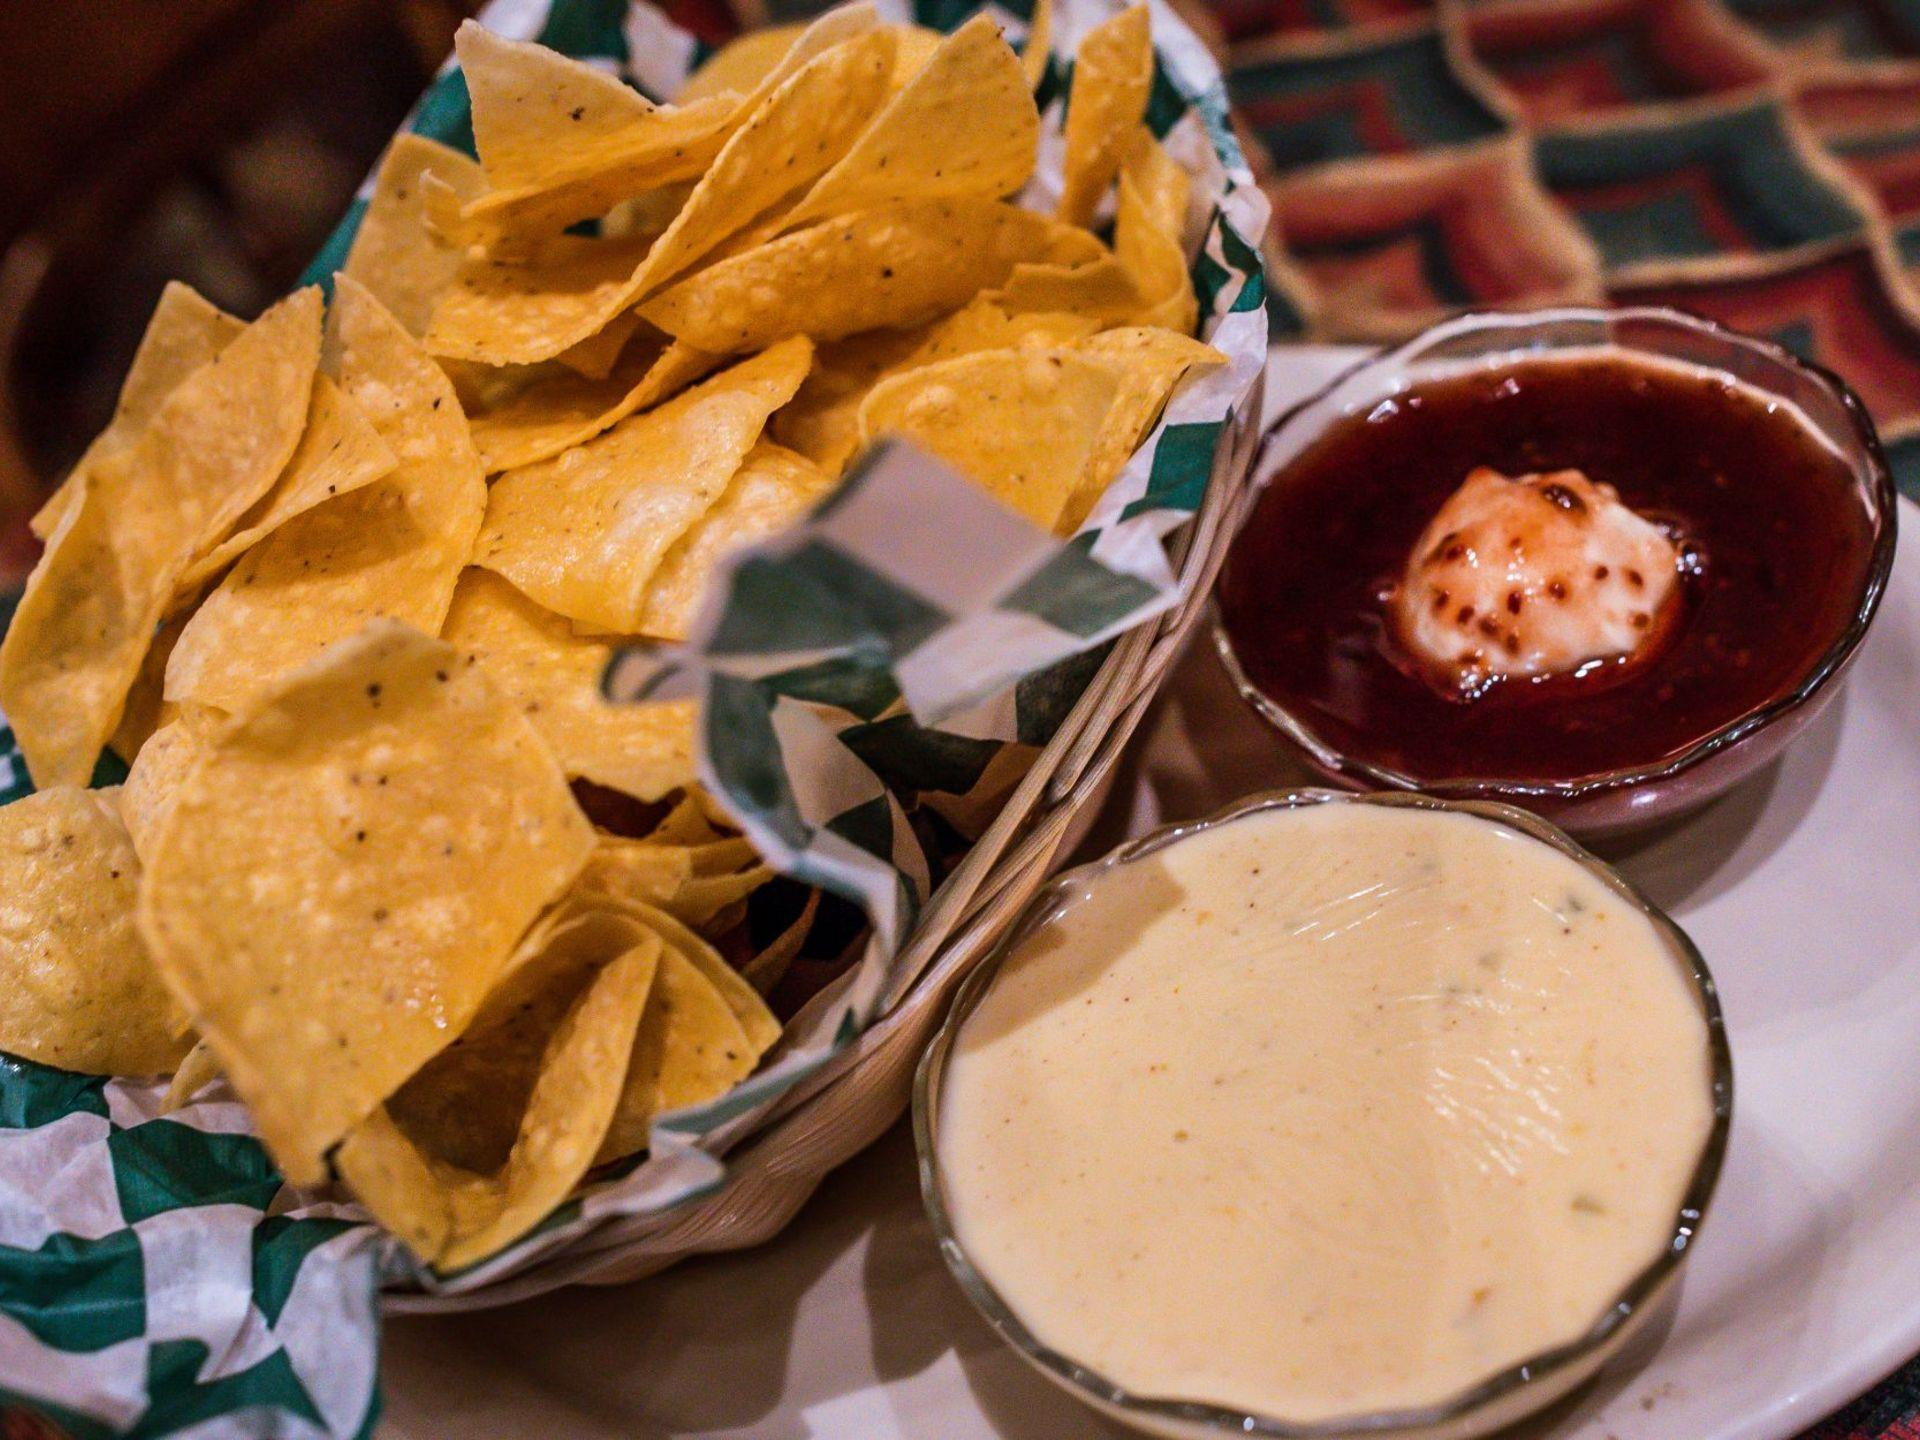 Basket of tortilla chips with cheese sauce and salsa